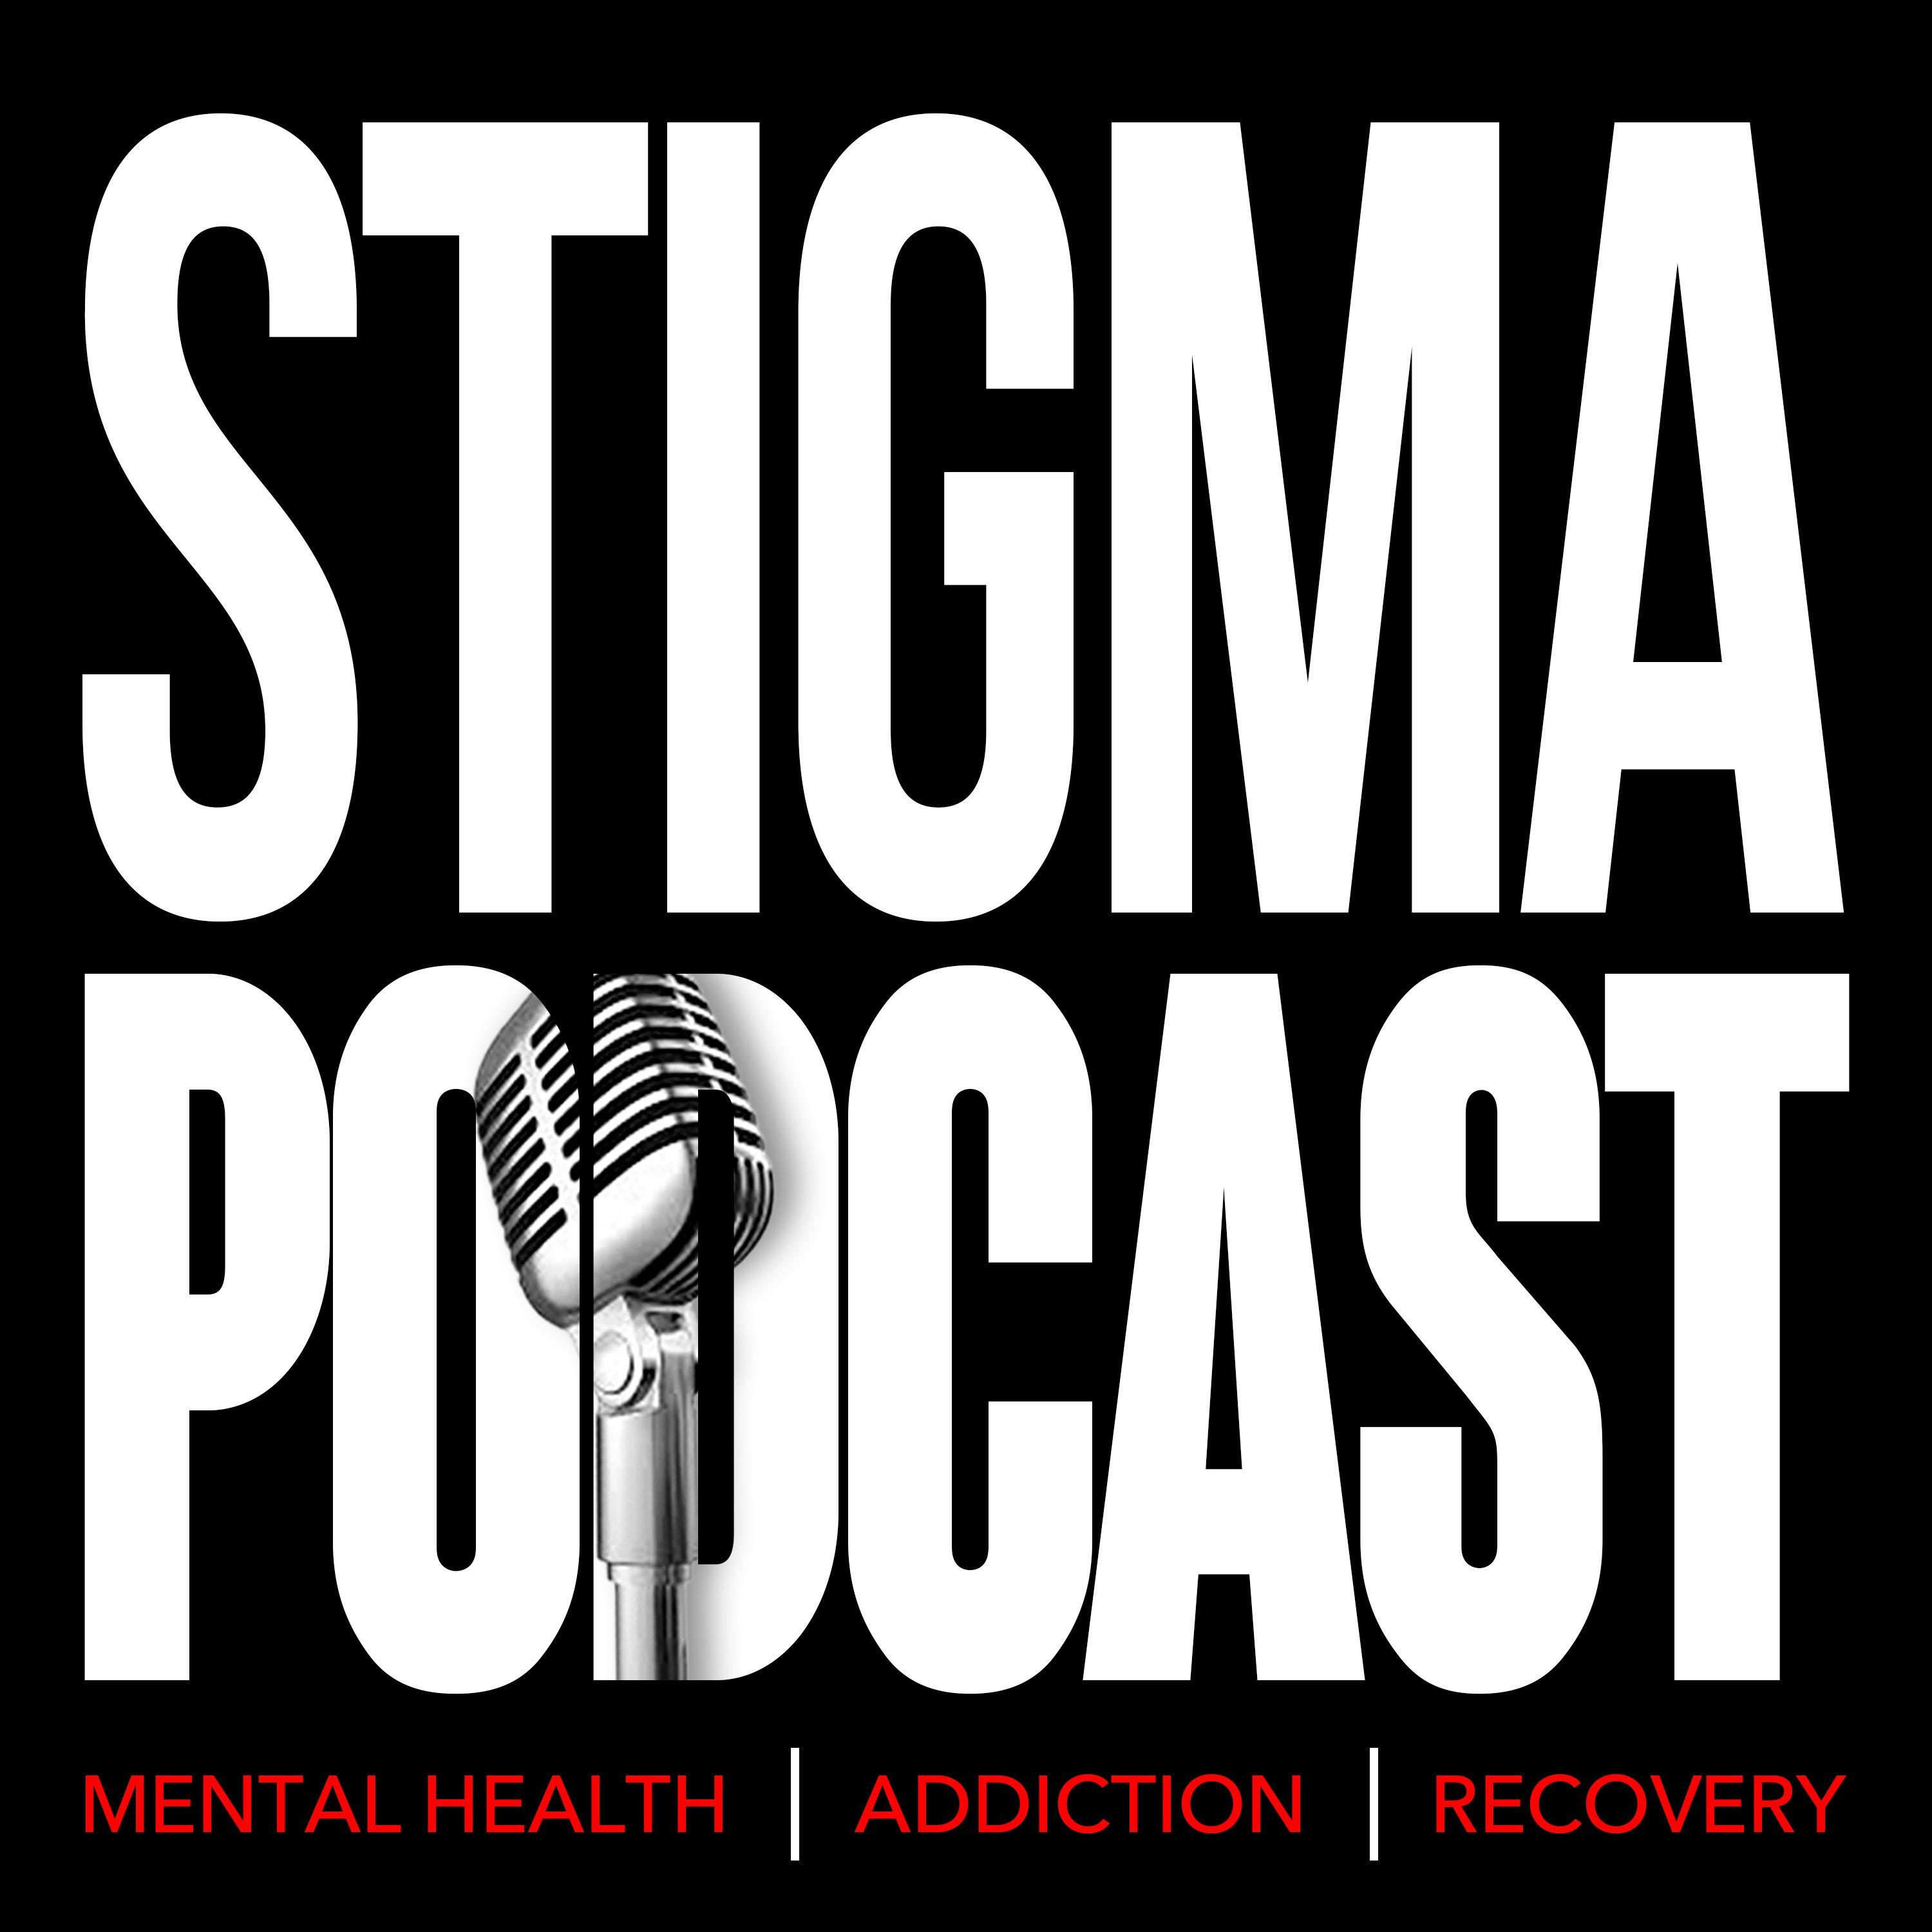 Stigma Podcast - Mental Health - #22 - Congressional Candidate Lindsey Boylan (D-NY) on Making Mental Health a Priority Issue in The Election